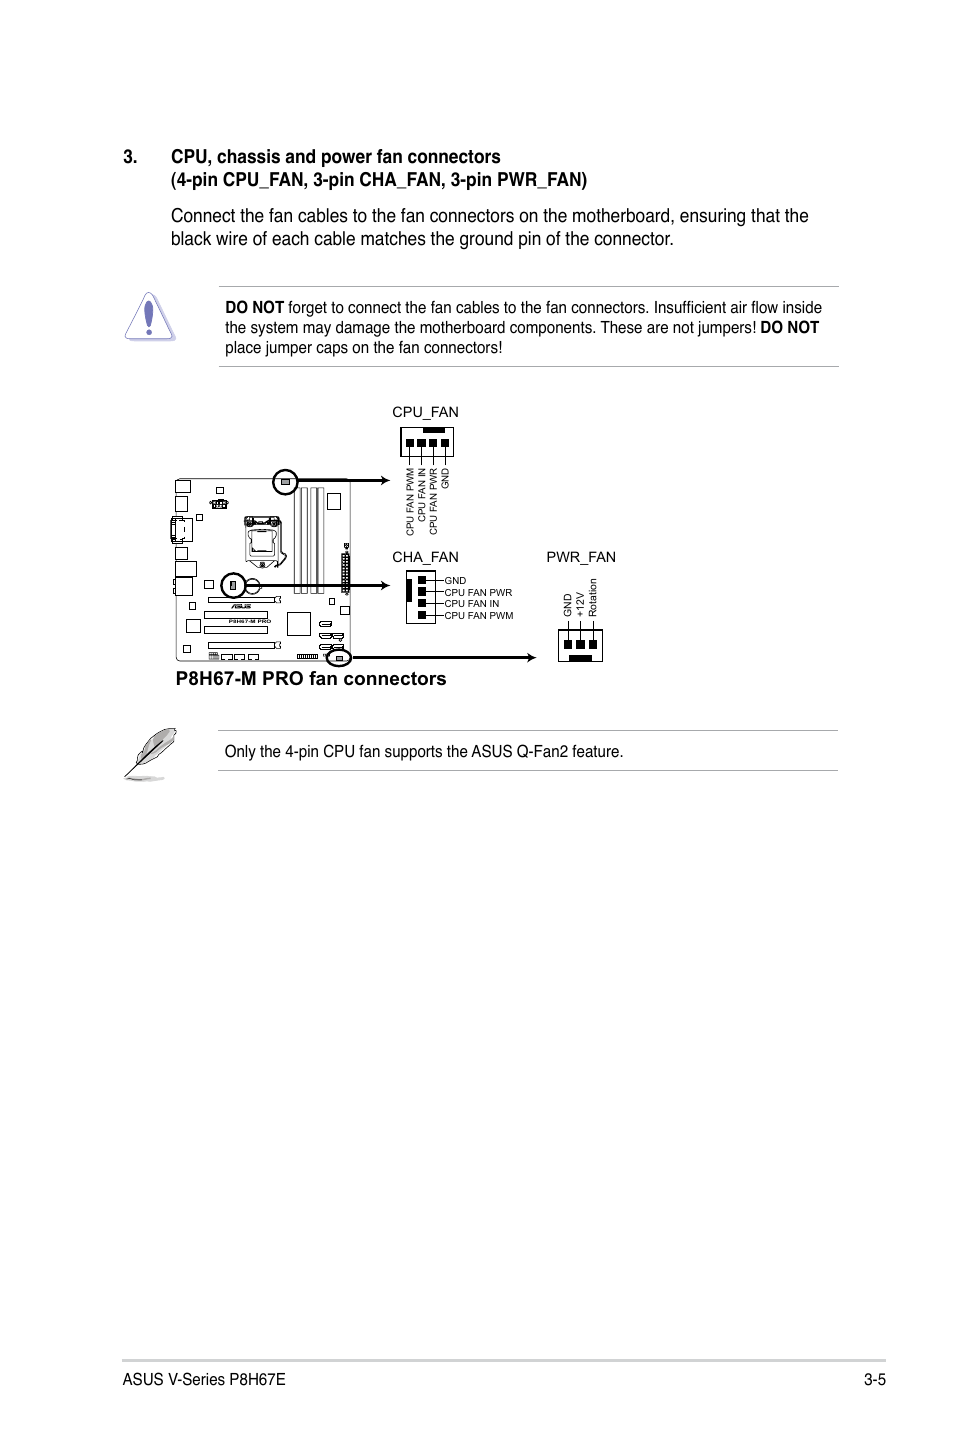 3 Pin Cpu Fan Wire Diagram Wiring Library 4 Pwm P8h67 M Pro Connectors Asus V8 P8h67e User Manual Page 49 79